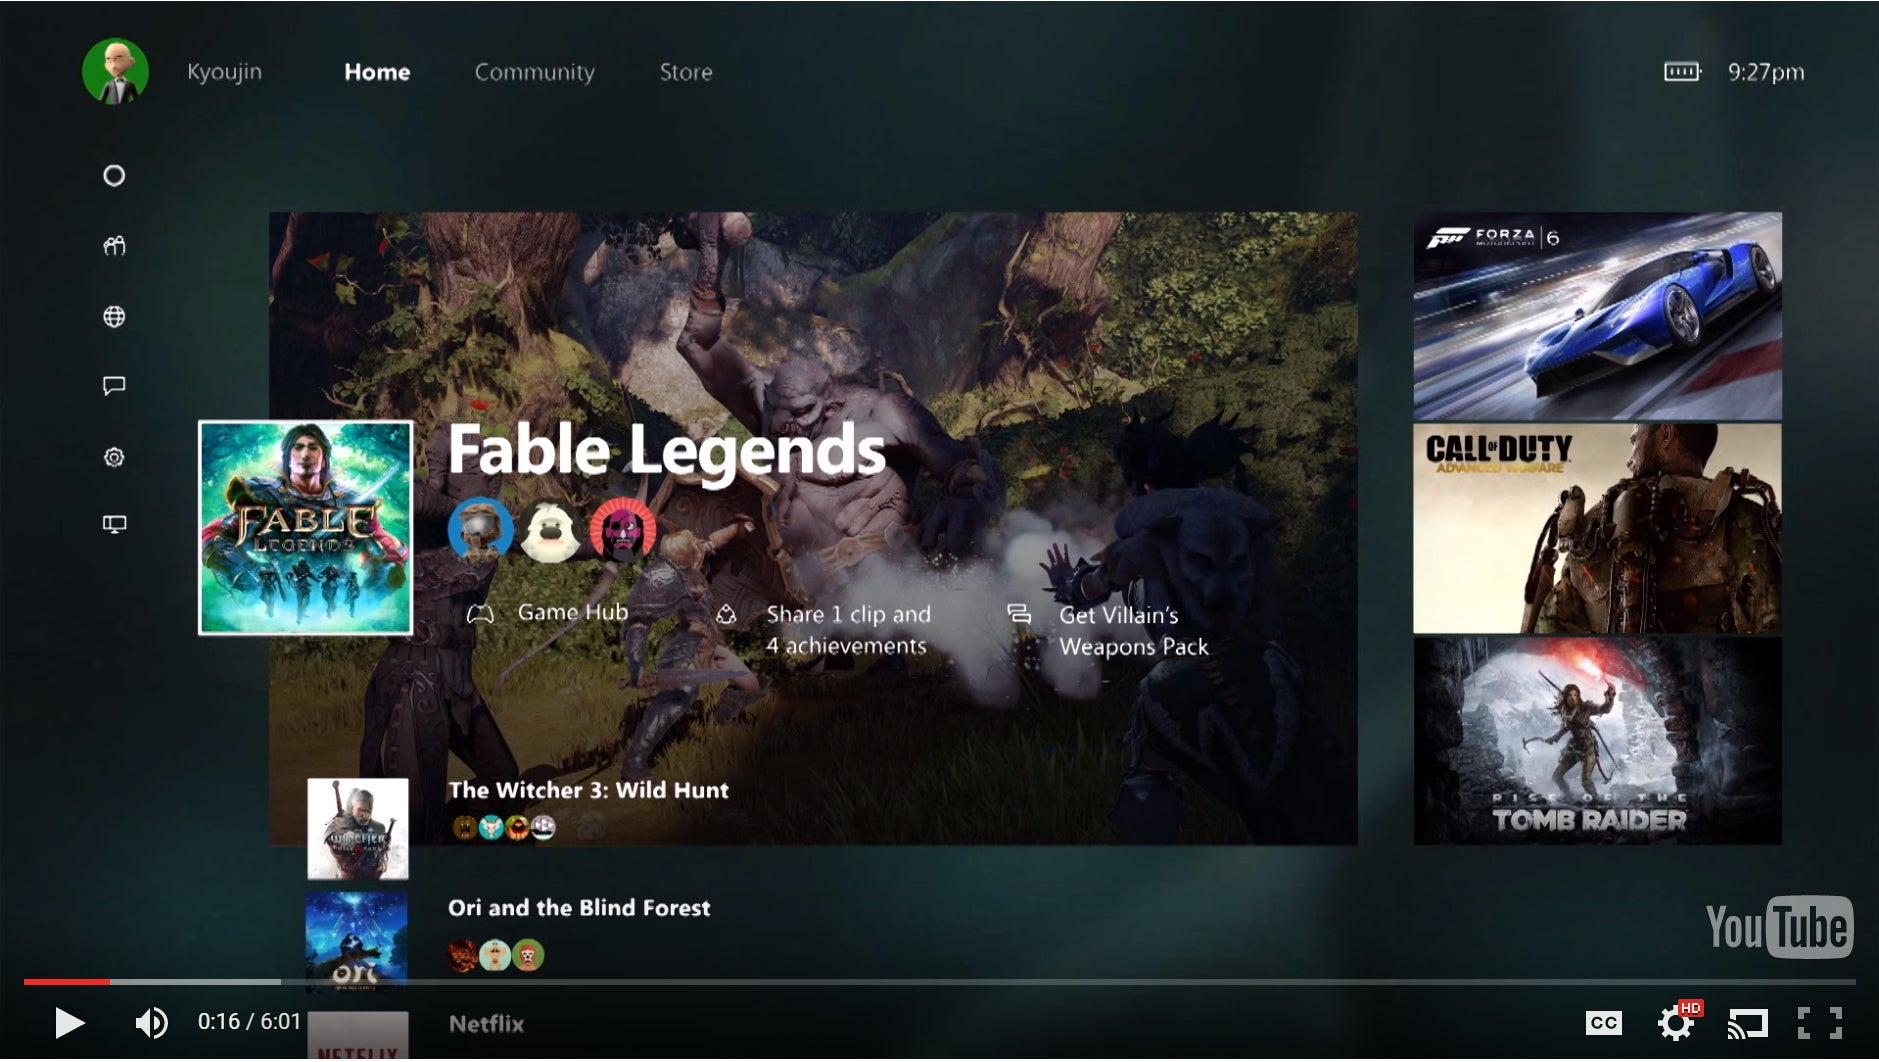 The New Xbox One Experience plays favorites, allowing titles